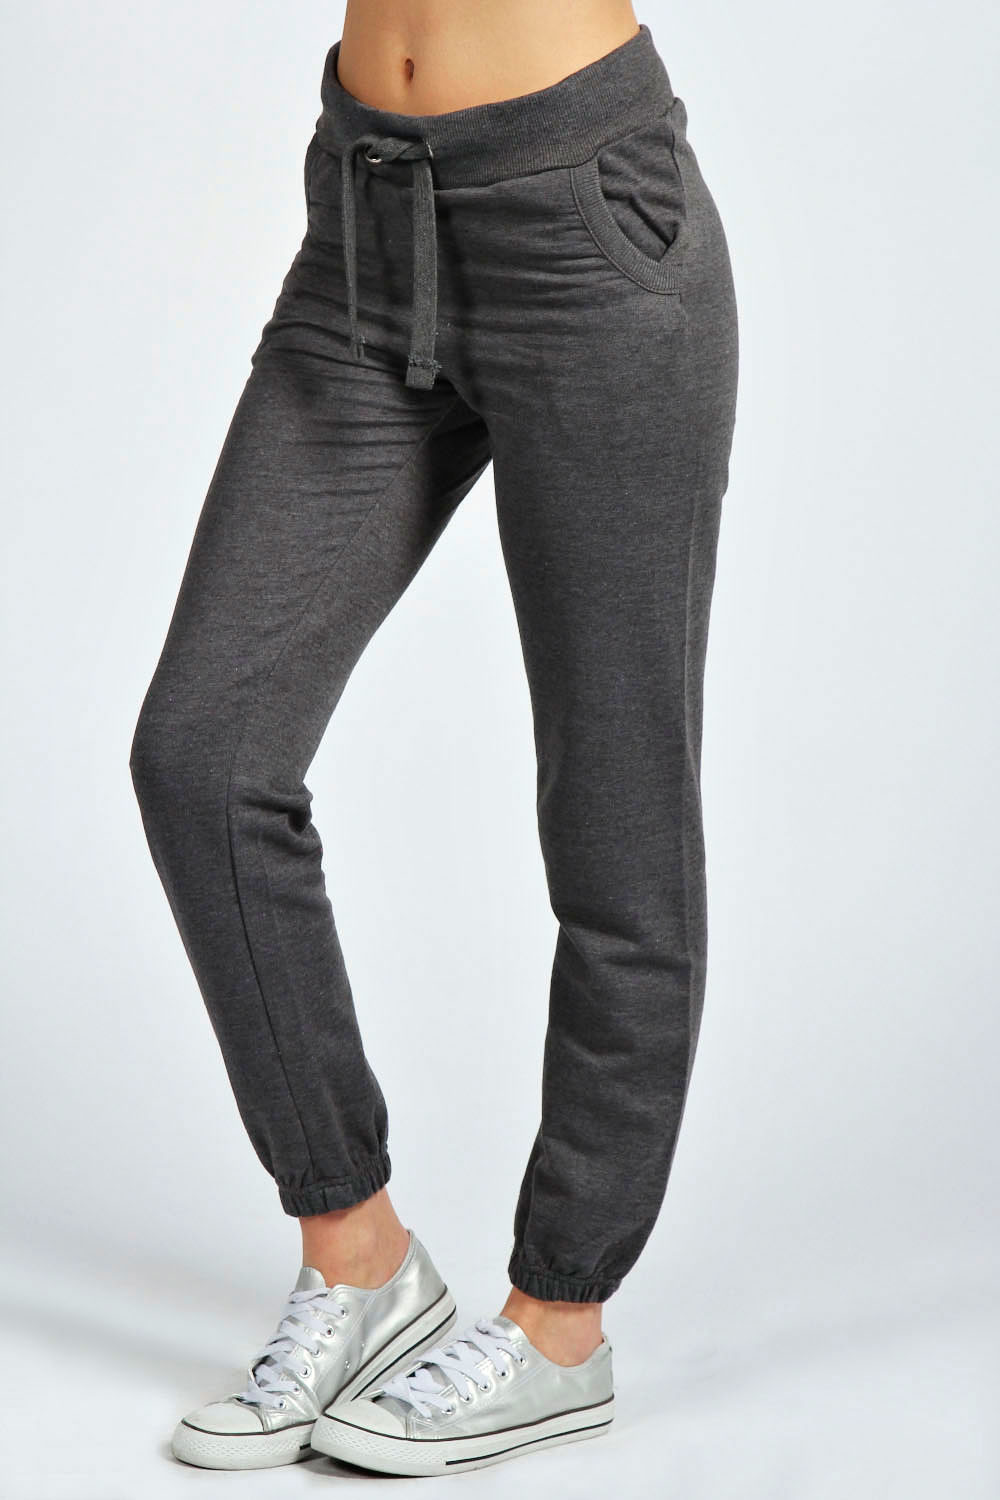 Boohoo-Womens-Ladies-Philly-Two-Pocket-Draw-Cord-Joggers